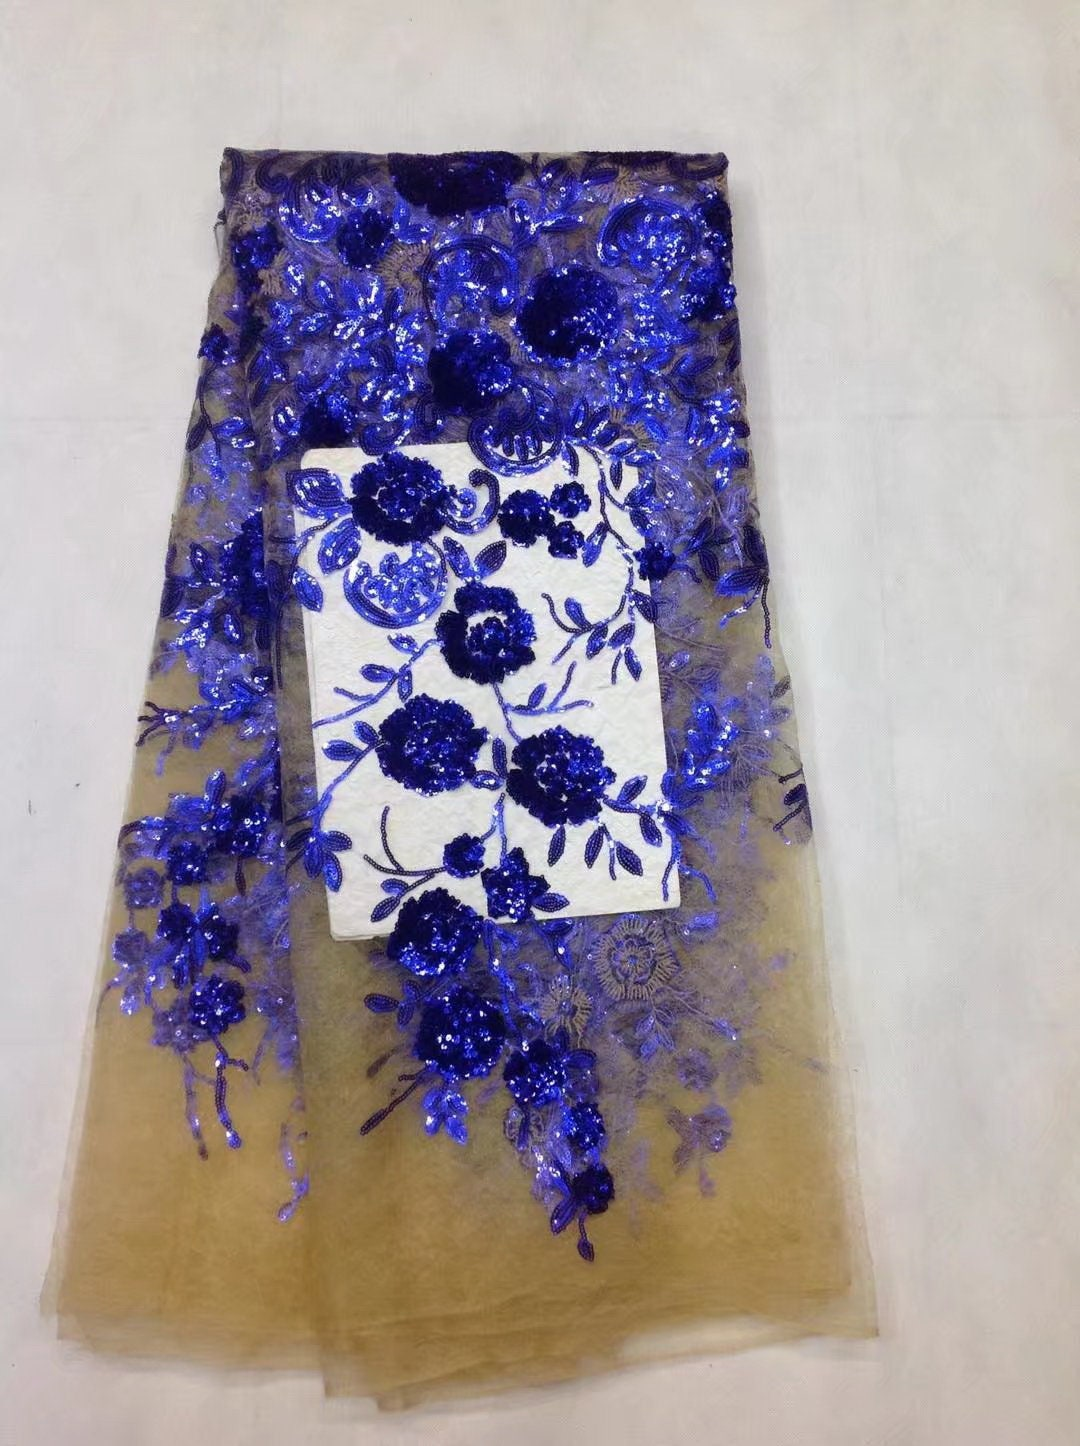 502bd7e4a18fc African Net Sequins Laces 5yard Latest Nigerian Laces 2018 blue Colour  Sequin Fabric for Sewing Dress Tulle Lace Fabric X1963